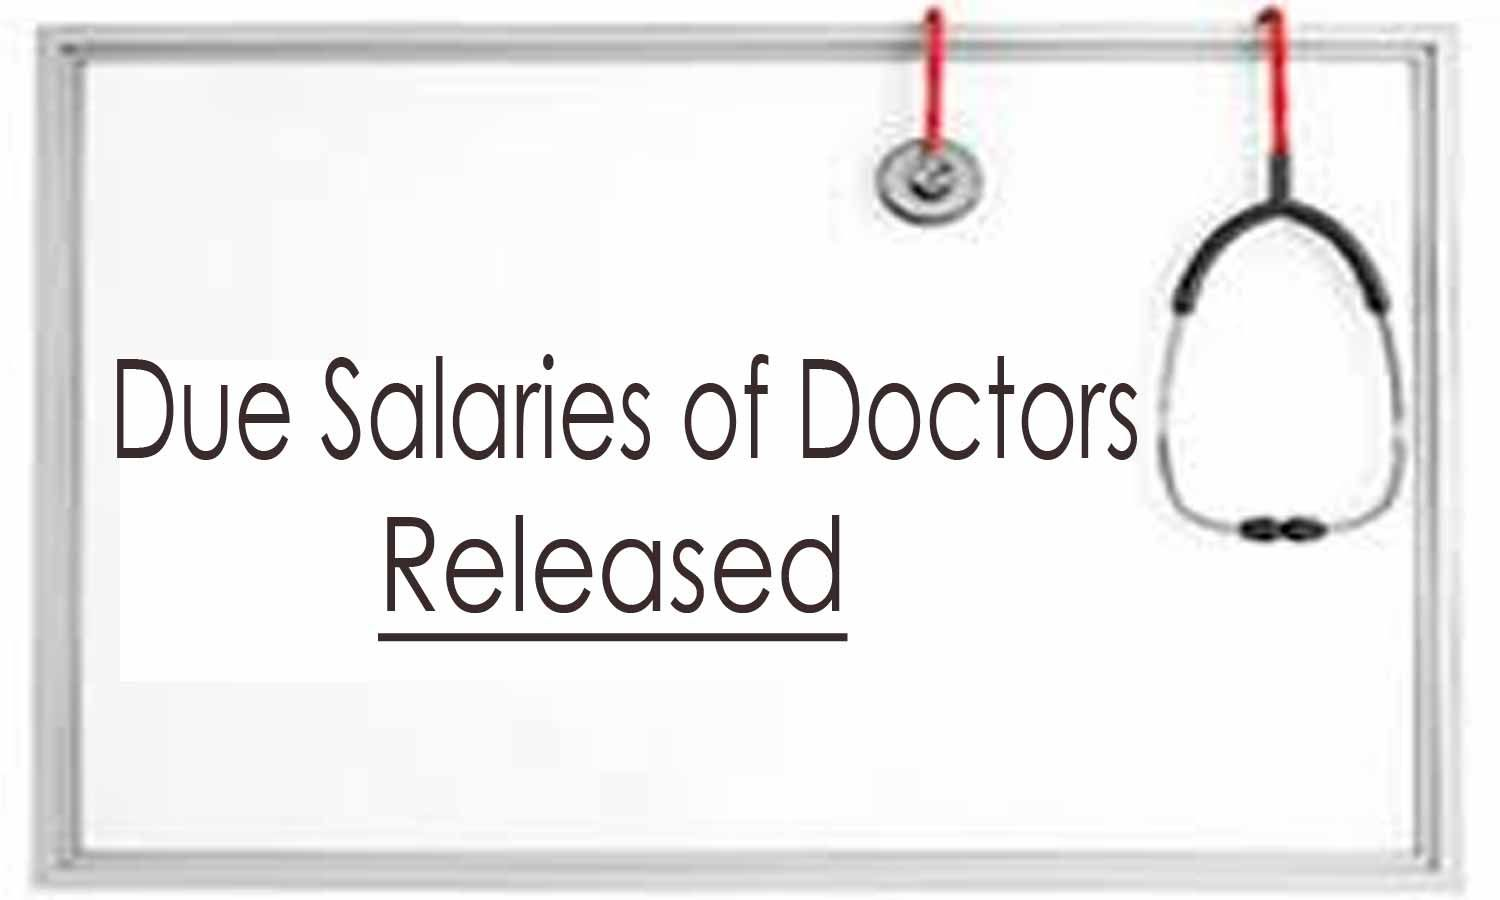 Due salaries of doctors for March-Apr released: NDMC